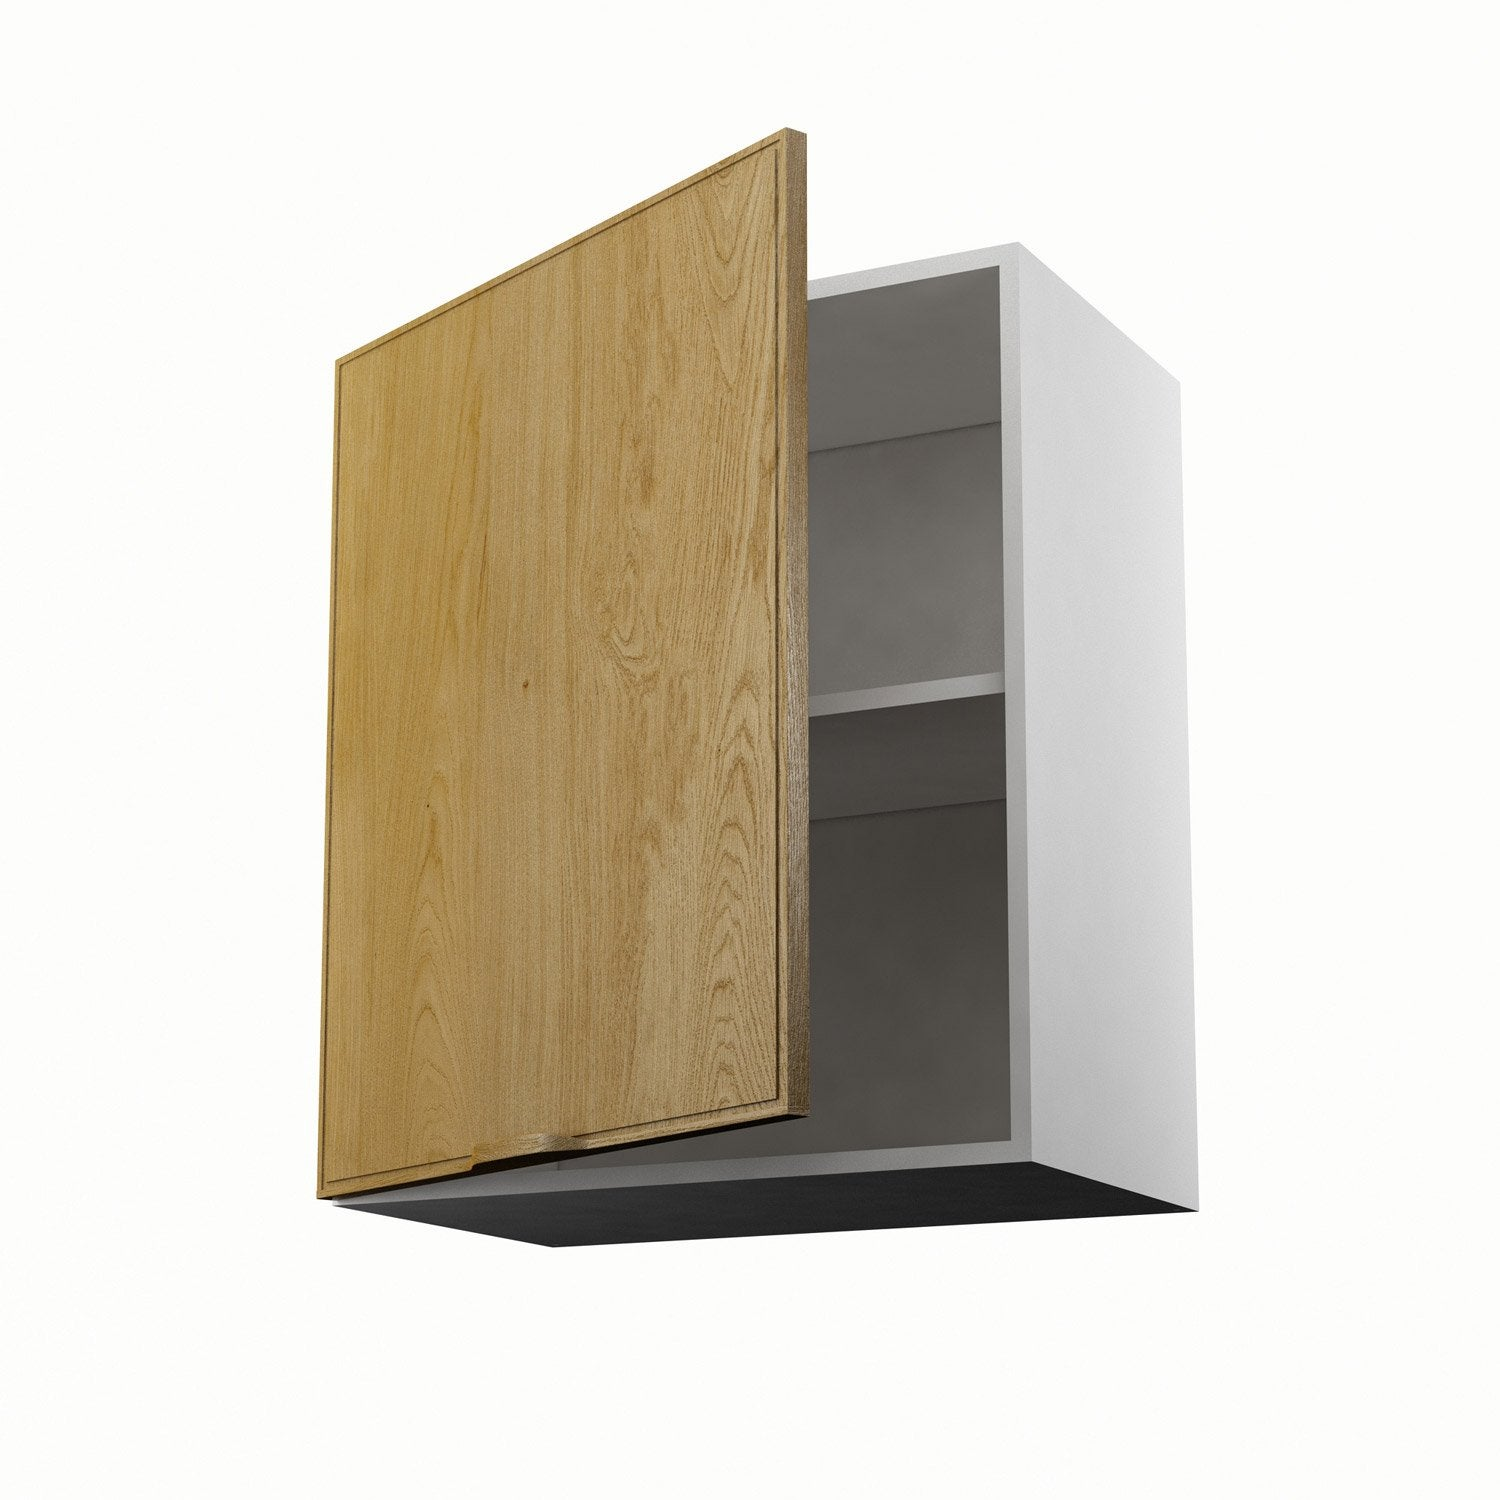 Meuble de cuisine haut ch ne 1 porte origine x x for Portes elements cuisine leroy merlin